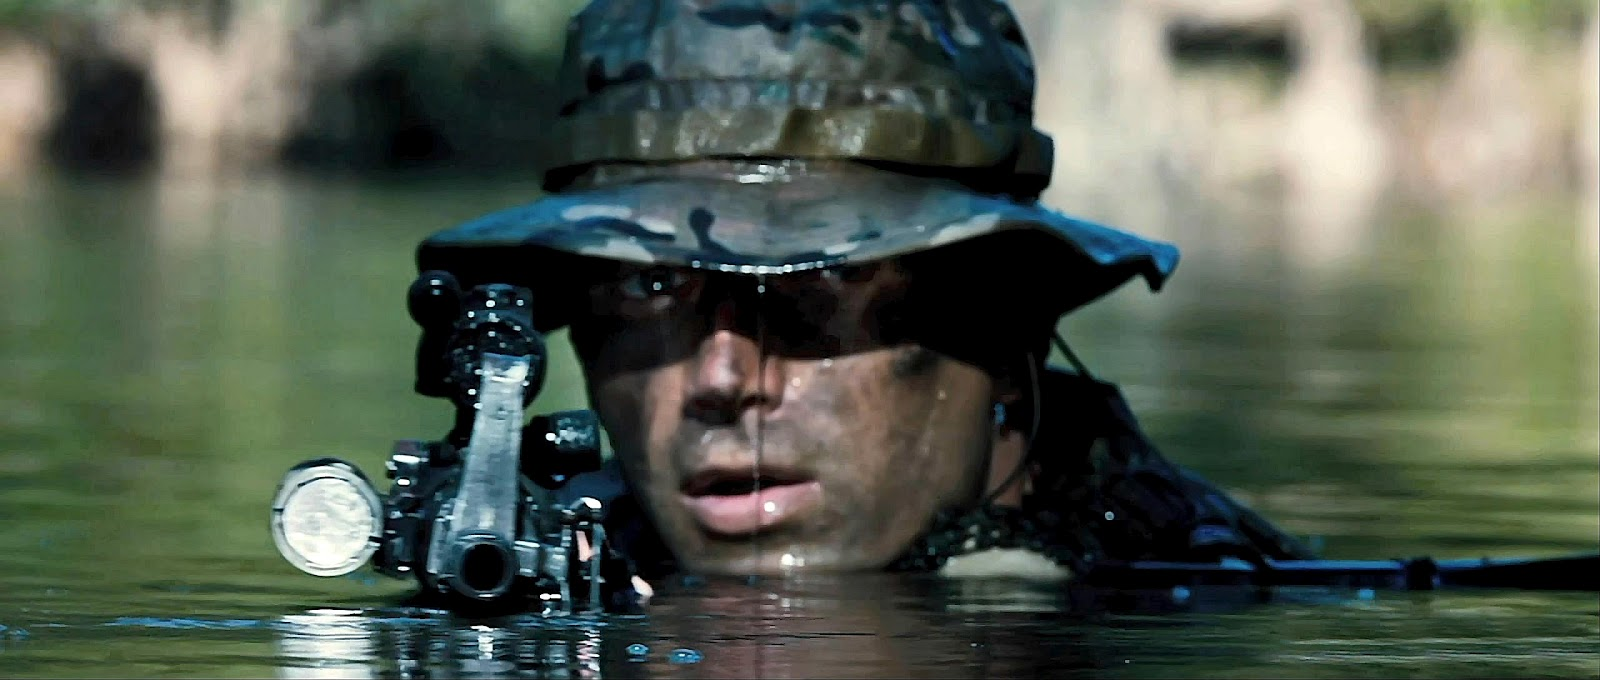 Act of Valor SEALs Hot Extraction